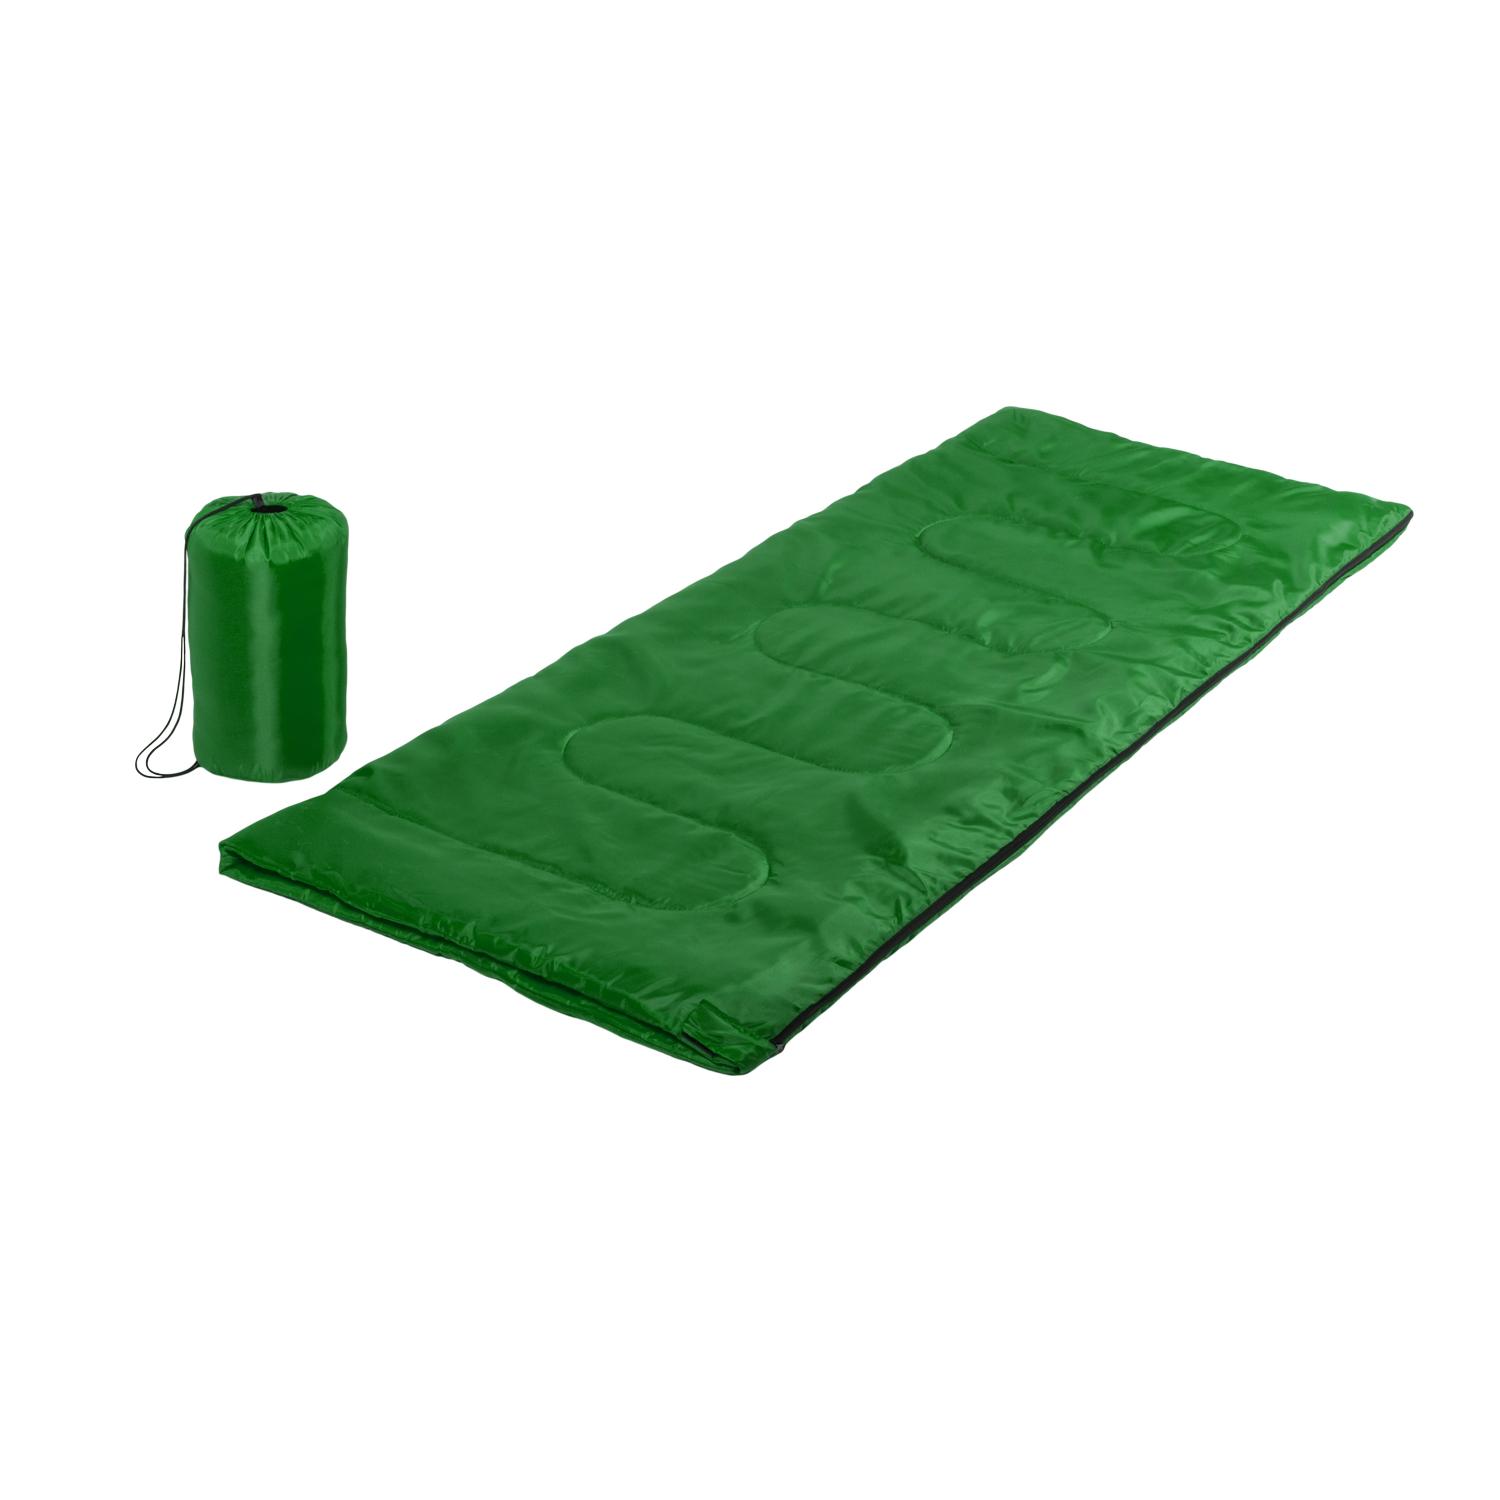 Sleeping Bag 012 - hmi14012-09 (Green)